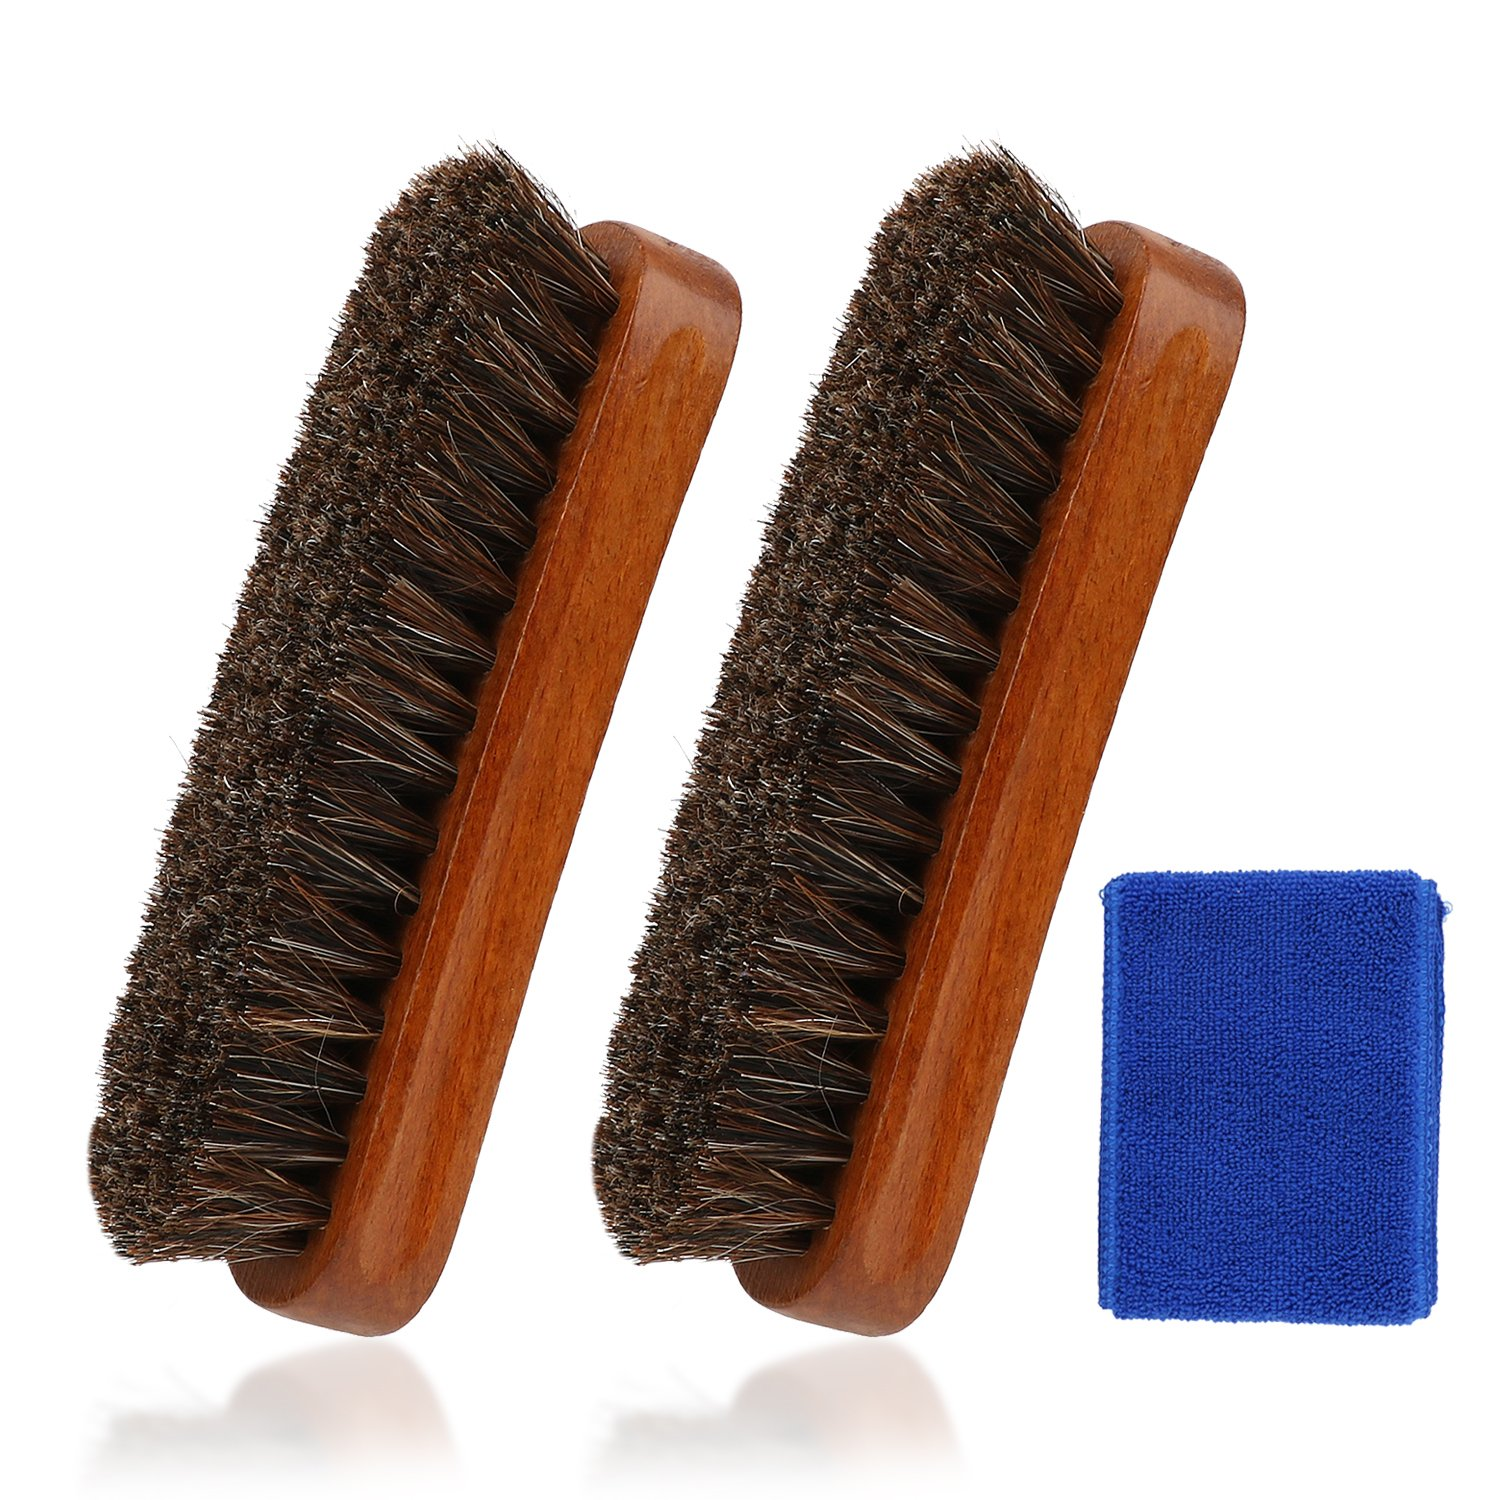 Soft Horsehair Bristles for Boots Shoes Leather Shine Brush Furniture BL3